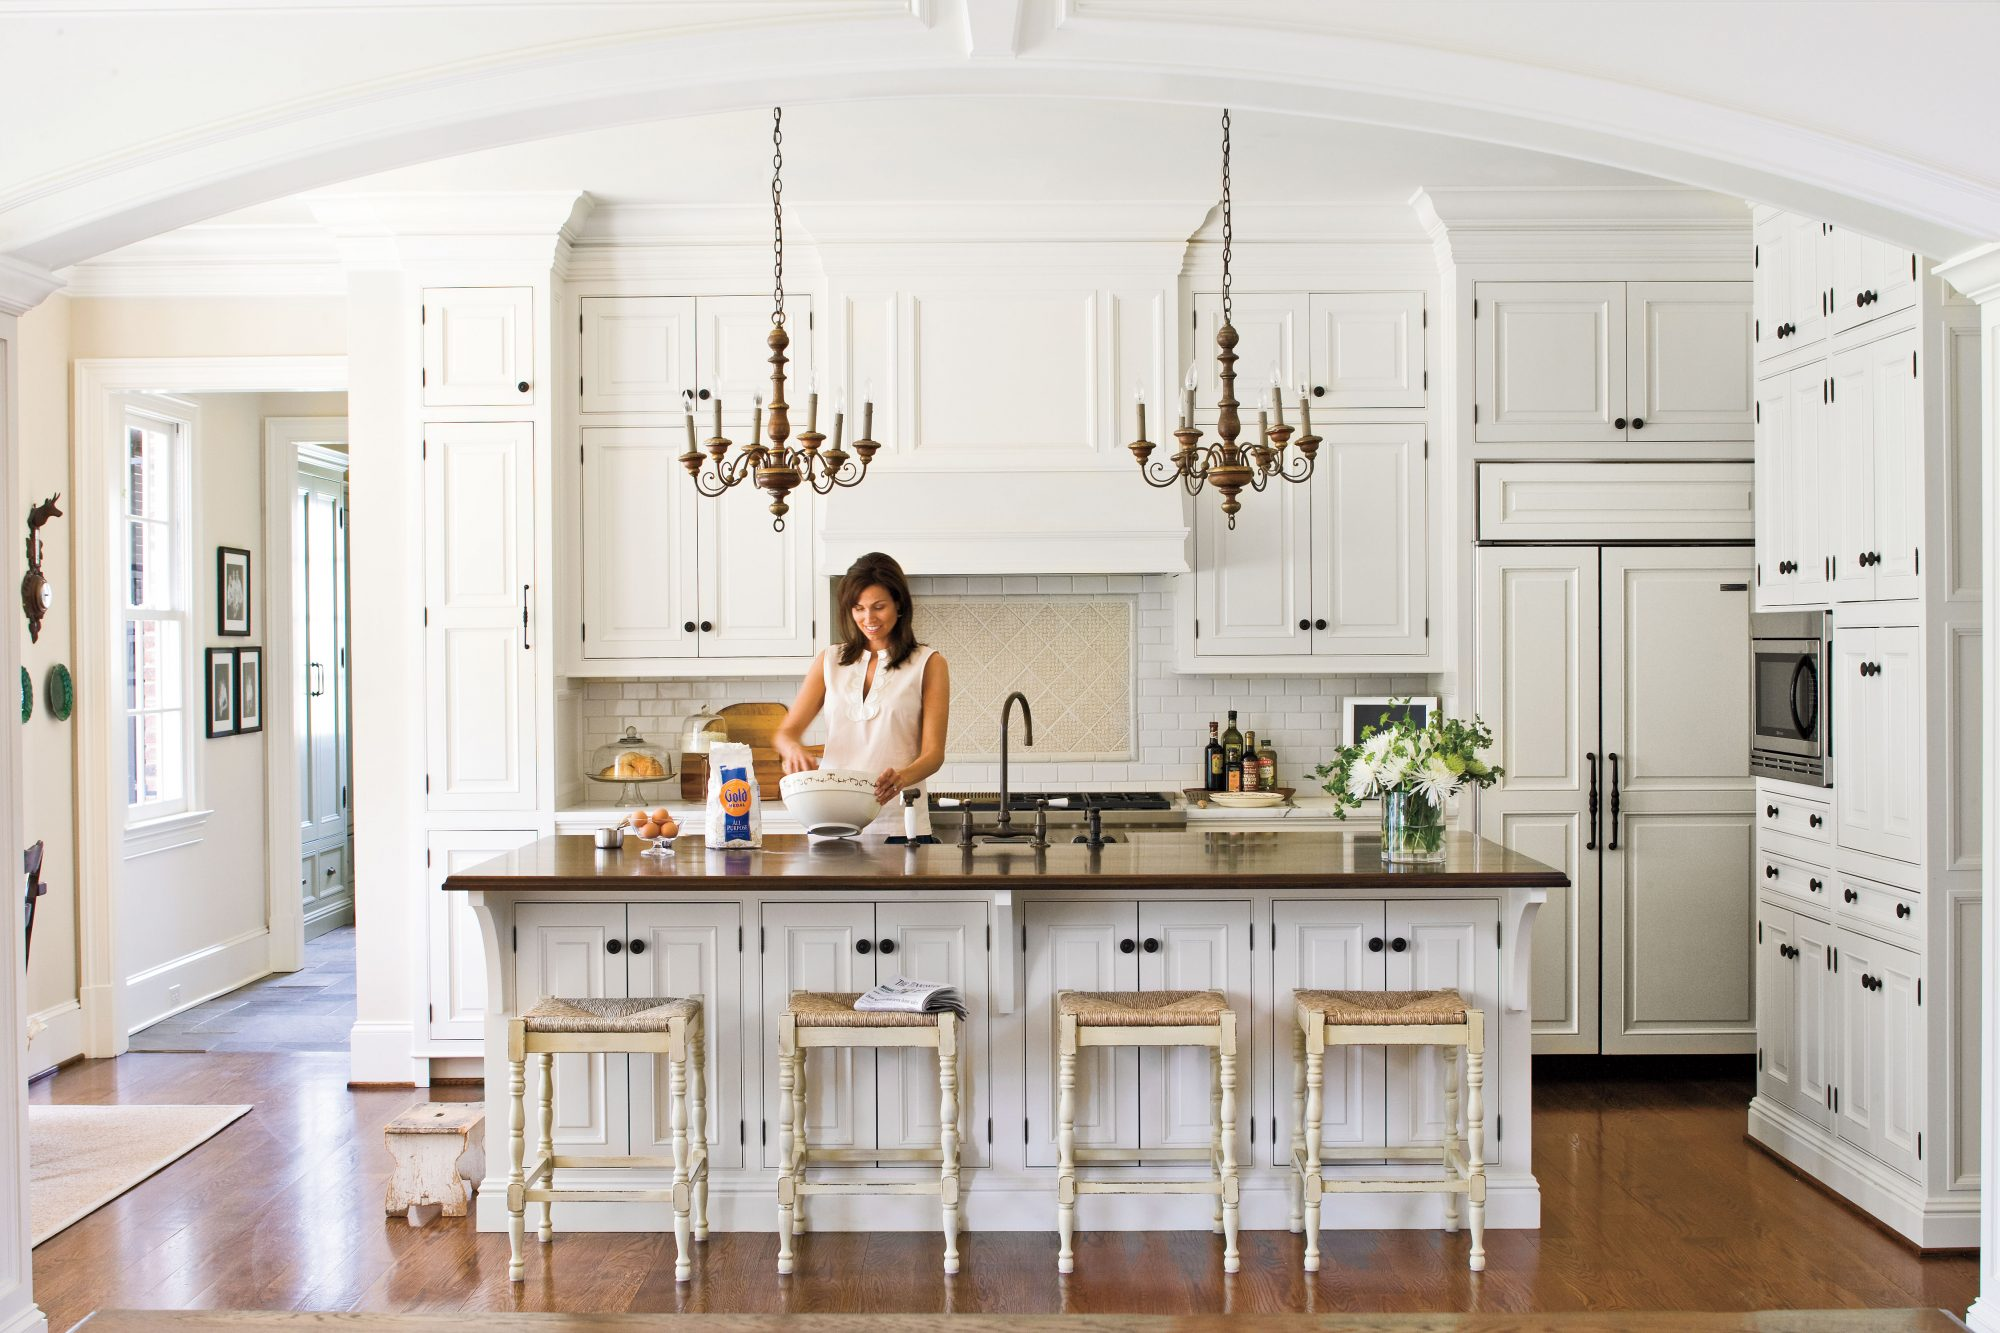 General Lighting & Kitchen Lighting Ideas - Southern Living